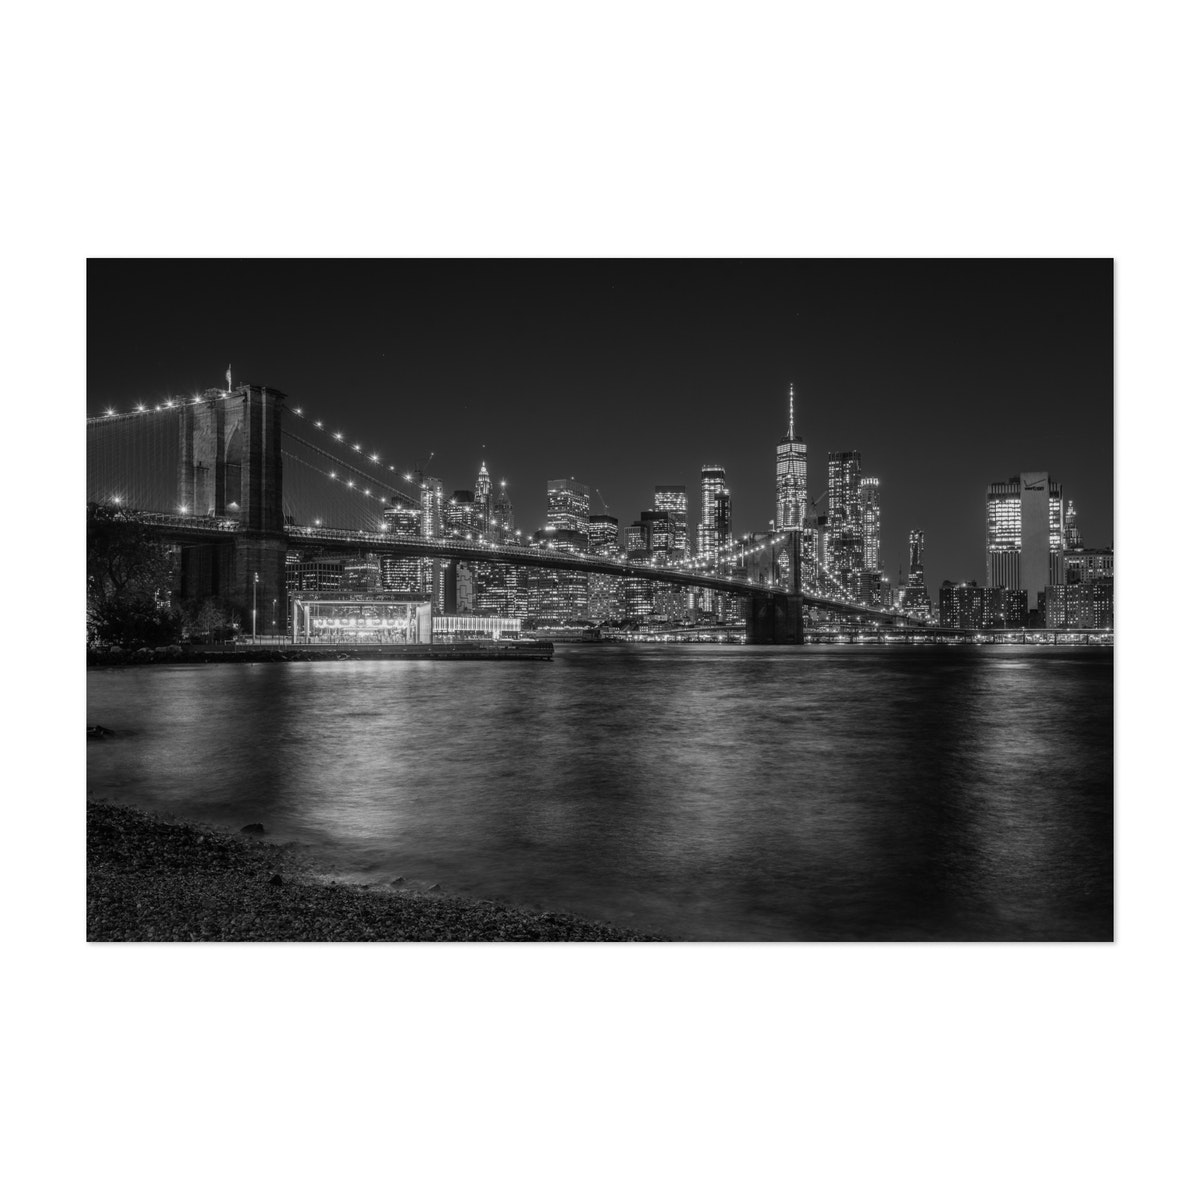 From DUMBO 01 B&W